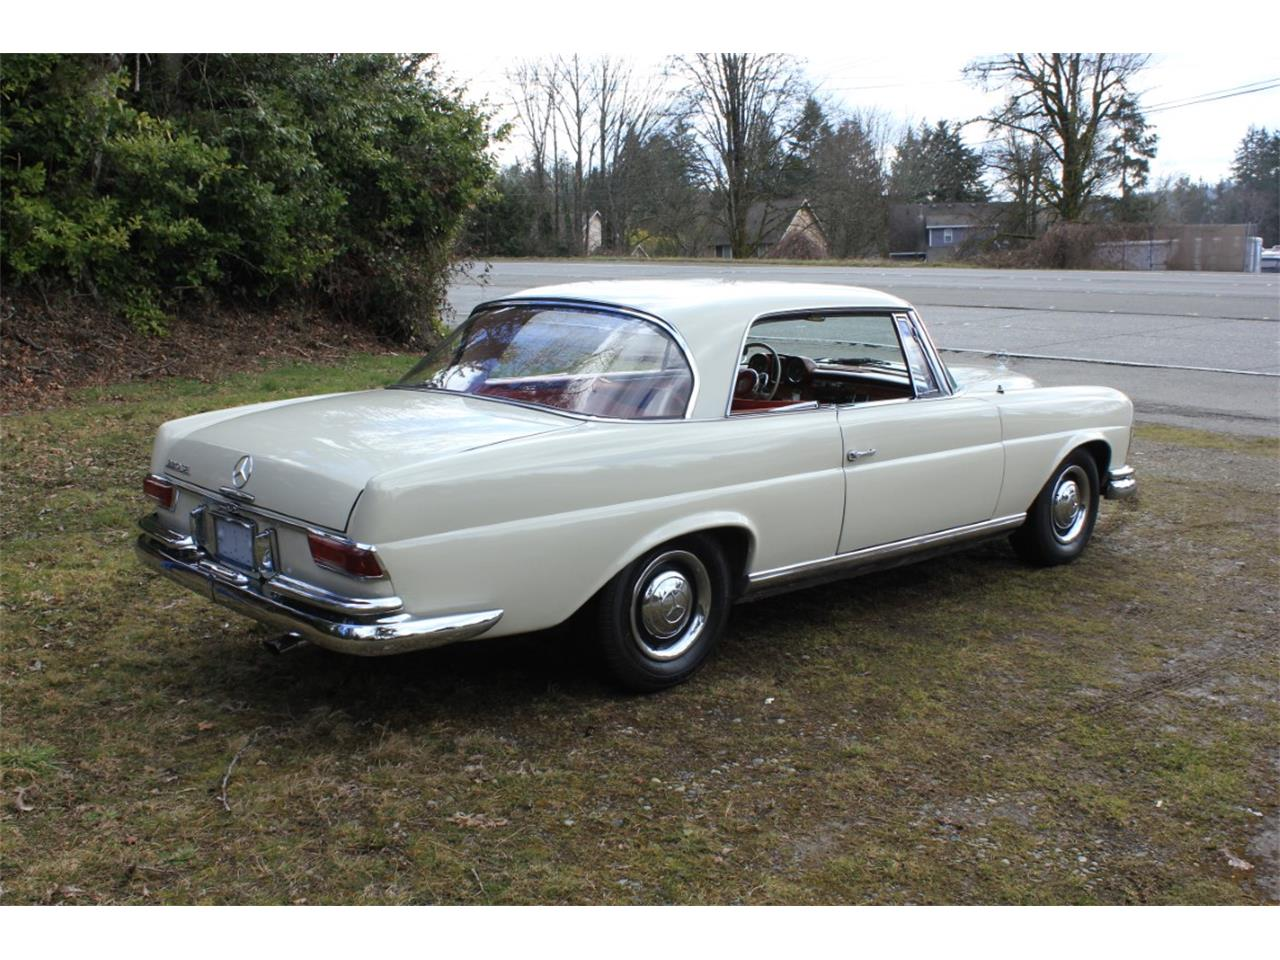 Large Picture of '63 Mercedes-Benz 220SE located in Tacoma Washington Auction Vehicle - PW4K